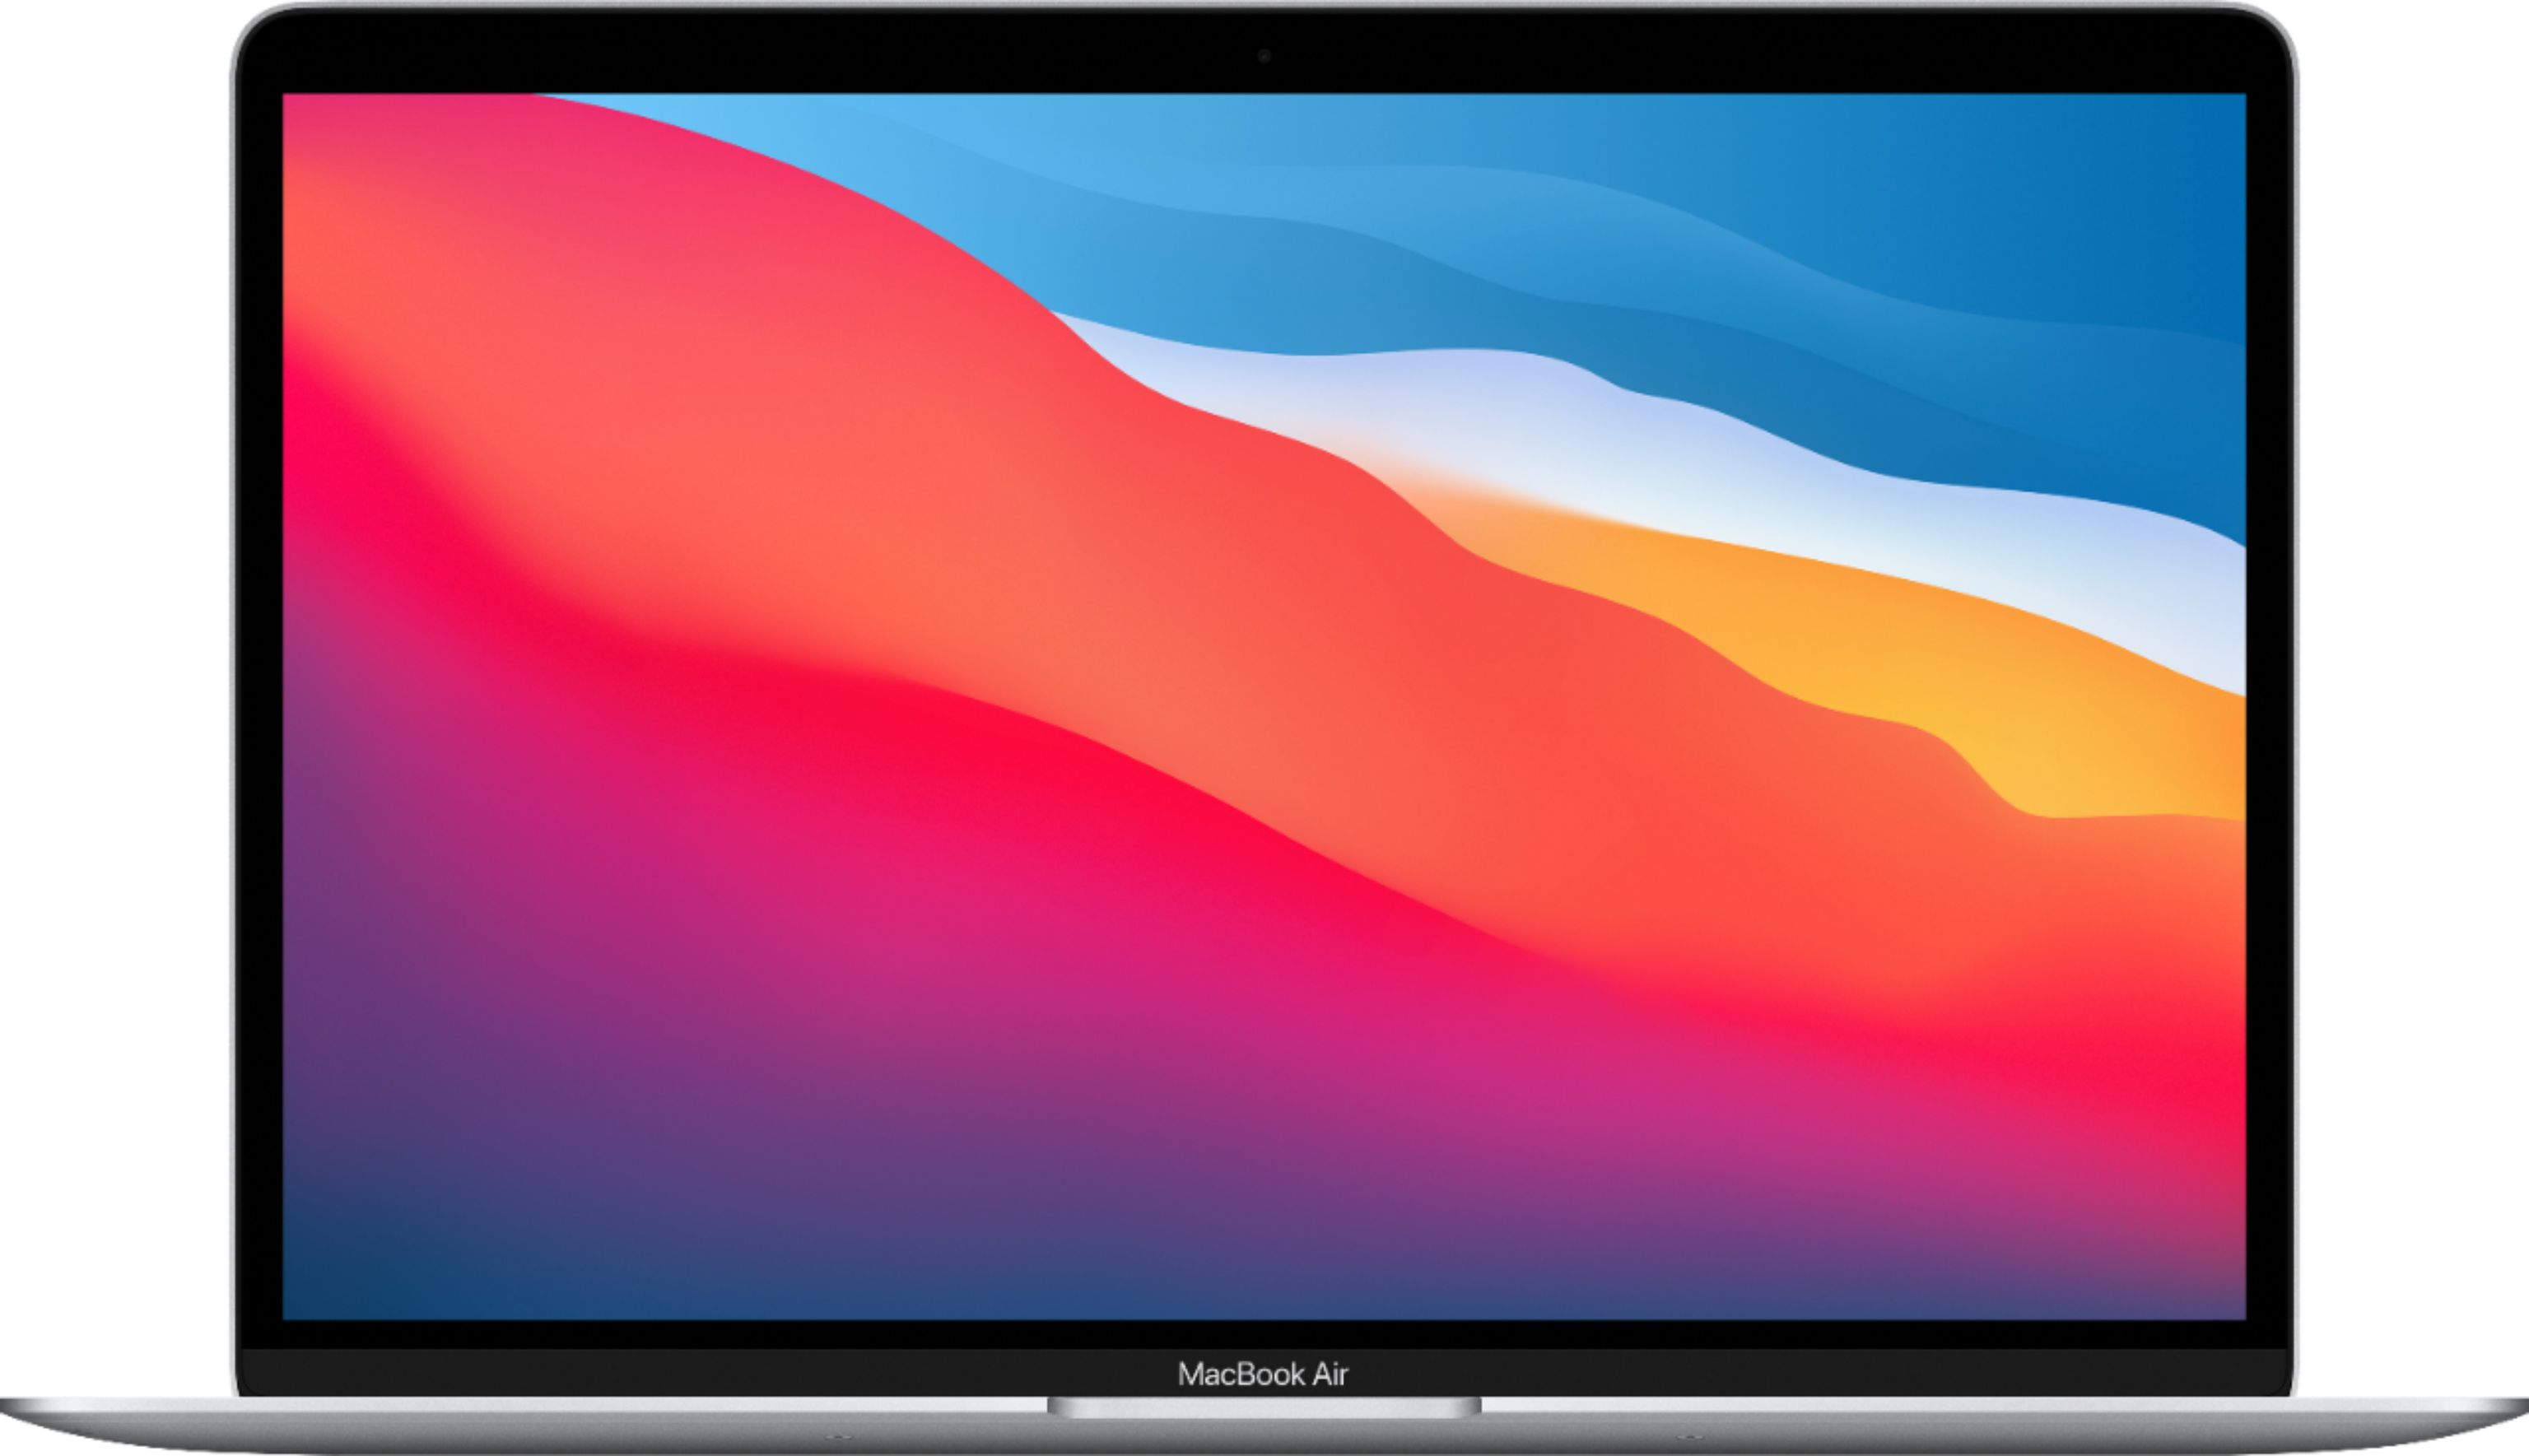 """Front Zoom. MacBook Air 13.3"""" Laptop - Apple M1 chip - 8GB Memory - 256GB SSD (Latest Model) - Silver."""